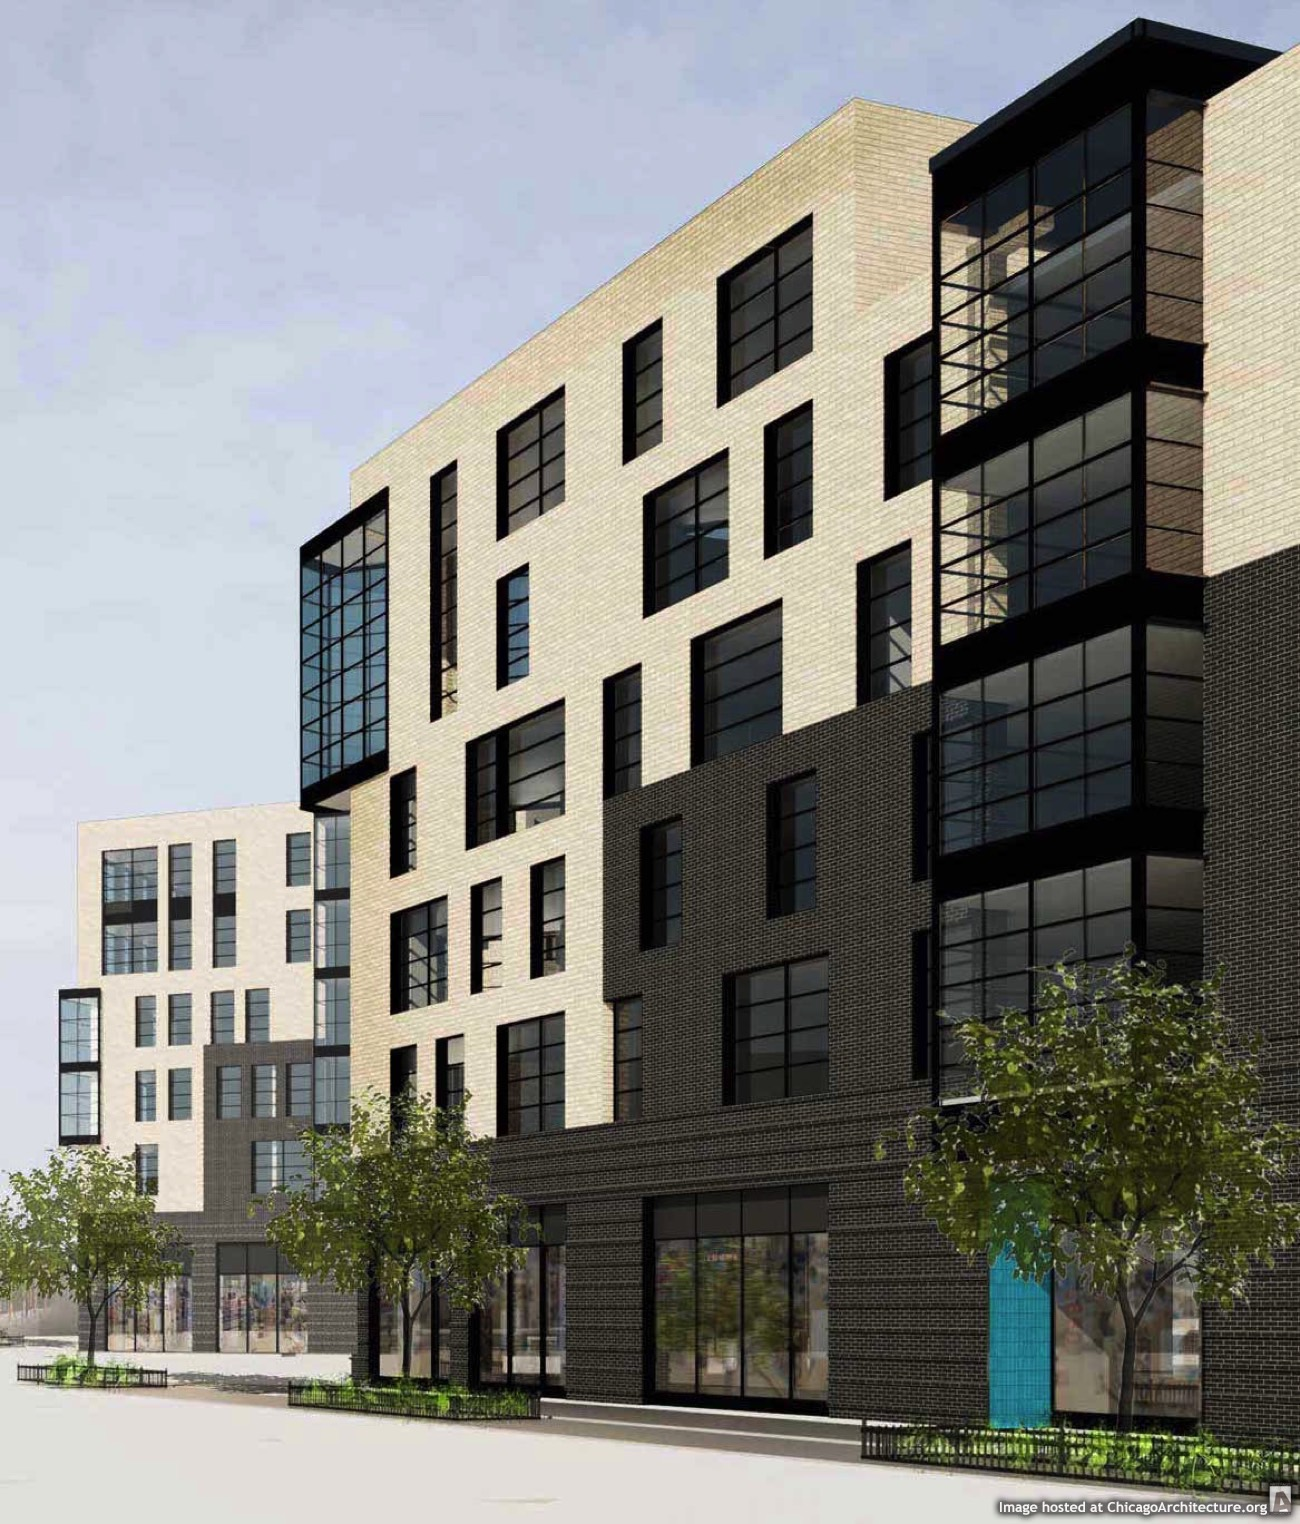 Rendering of the new Lathrop Homes gateway buildings (Courtesy of bKL Architecture)